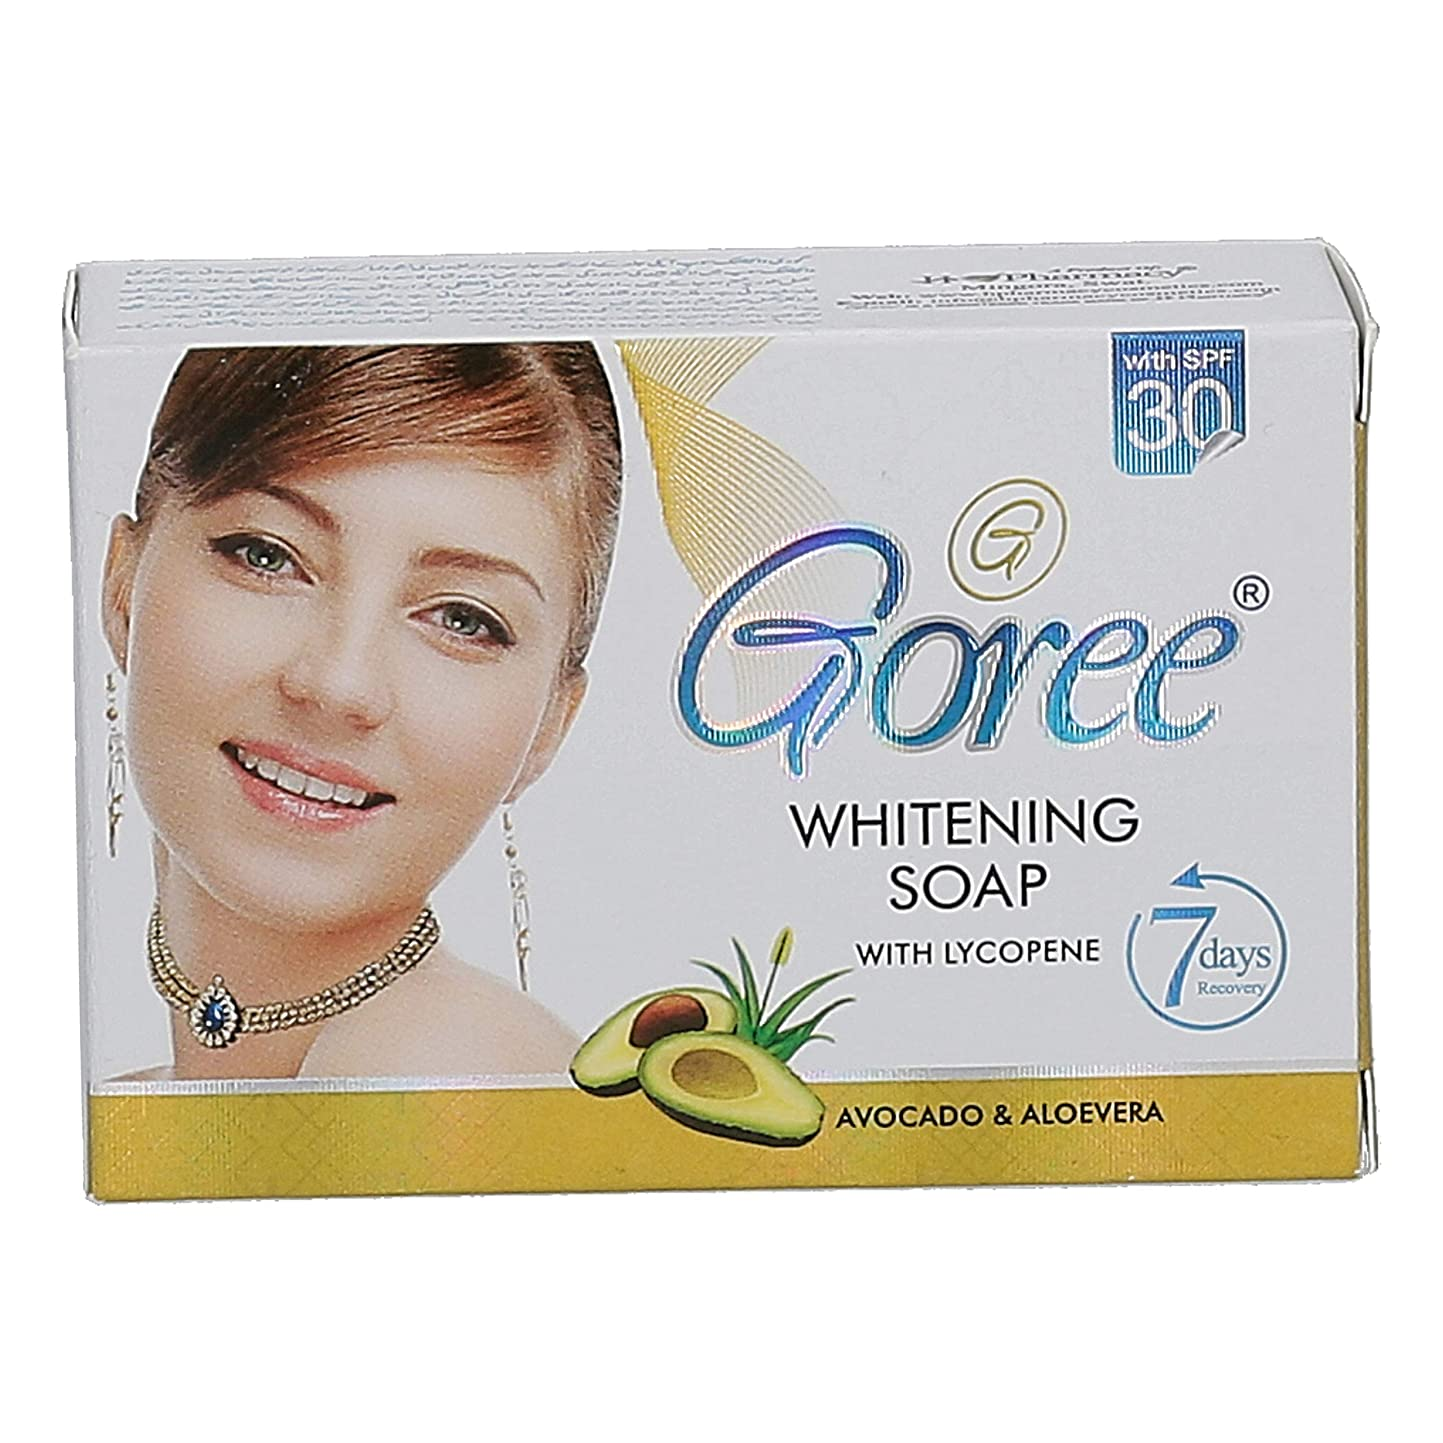 歩き回る四面体献身Goree WHITENING SOAP 100g AVOCADO & ALOEVERA WITH LYCOPENE 7days with SPF 30【GOREEブランド ホワイトニング ソープ 100g】